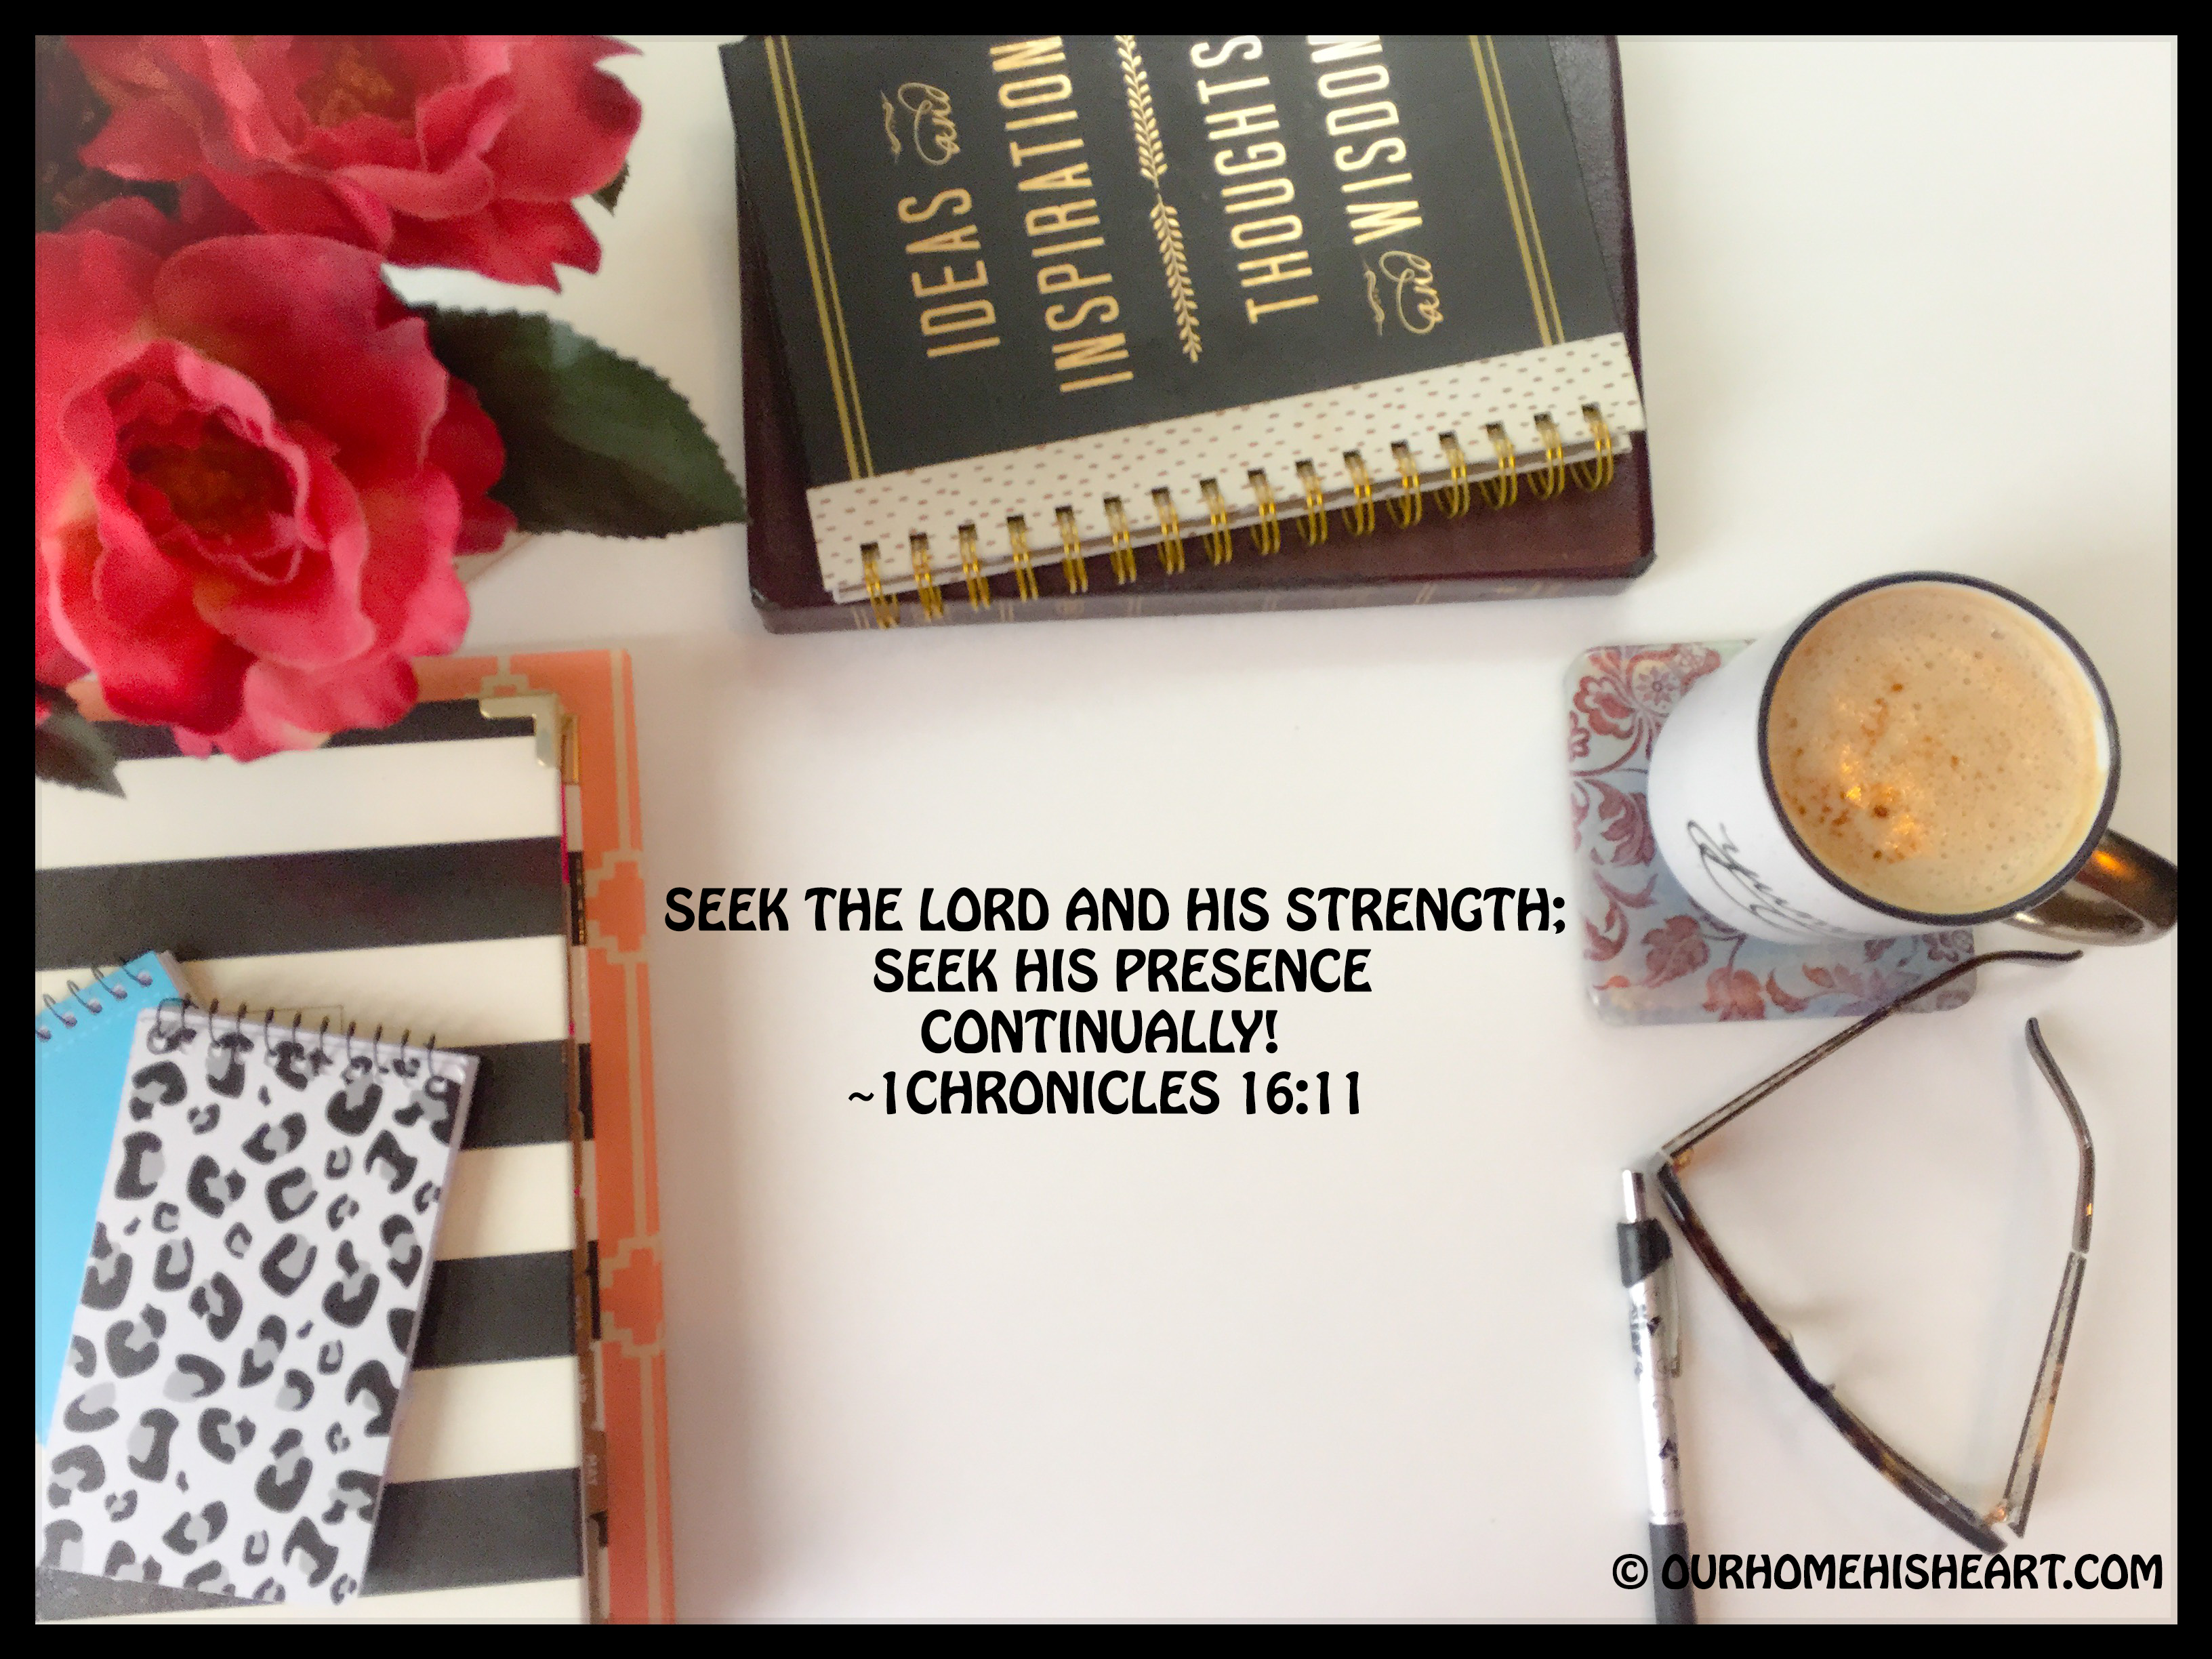 Seek_the_Lord_Continually_1Chronicles16_11_Devotion_Intimate_Daily_Time_With_God